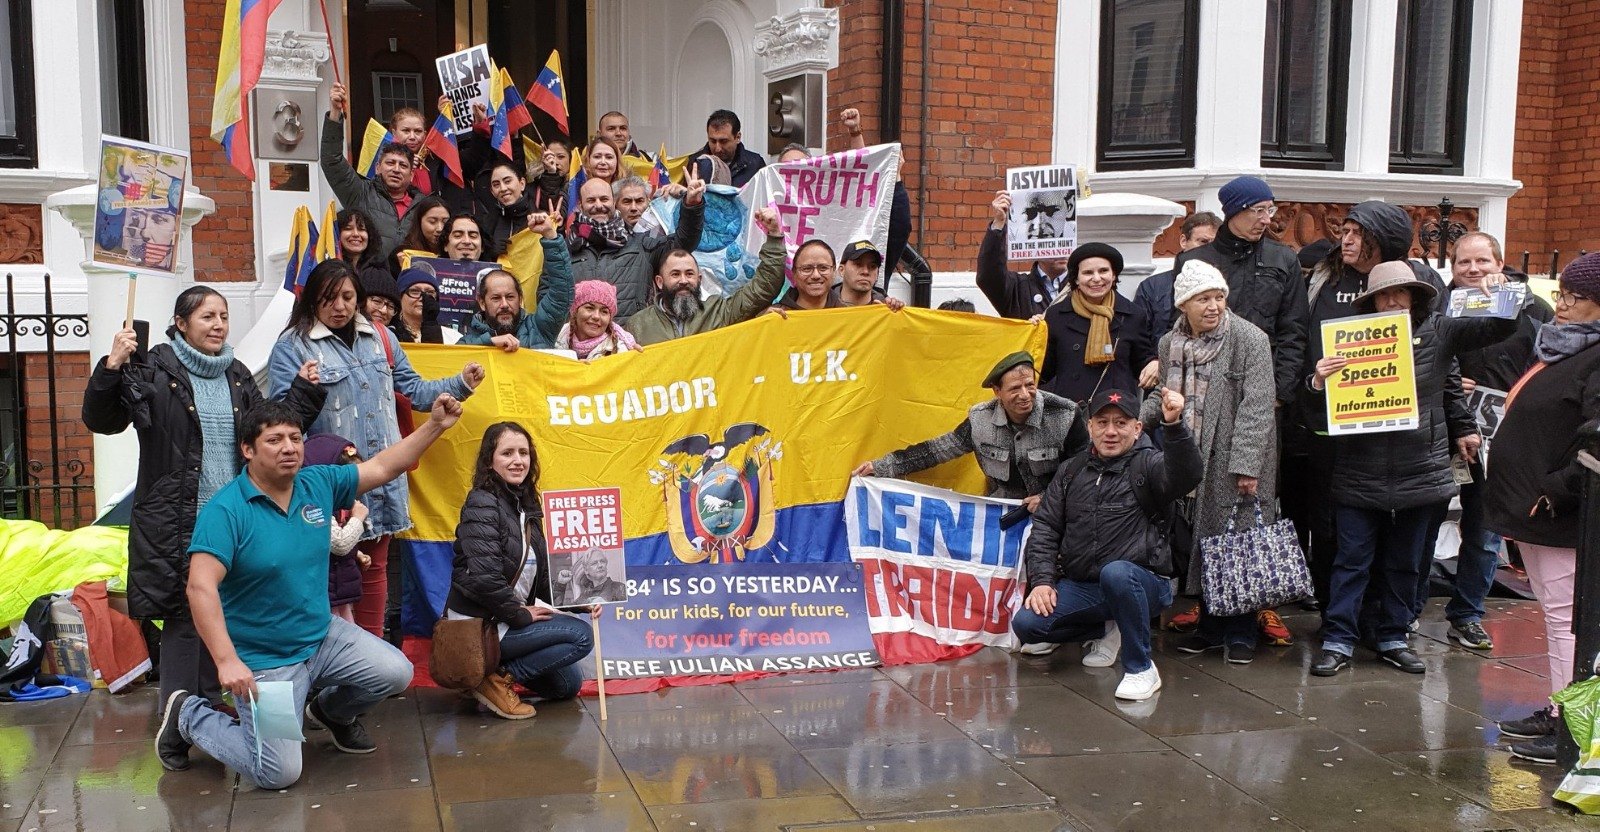 UK: Julian Assange threatened with expulsion from embassy